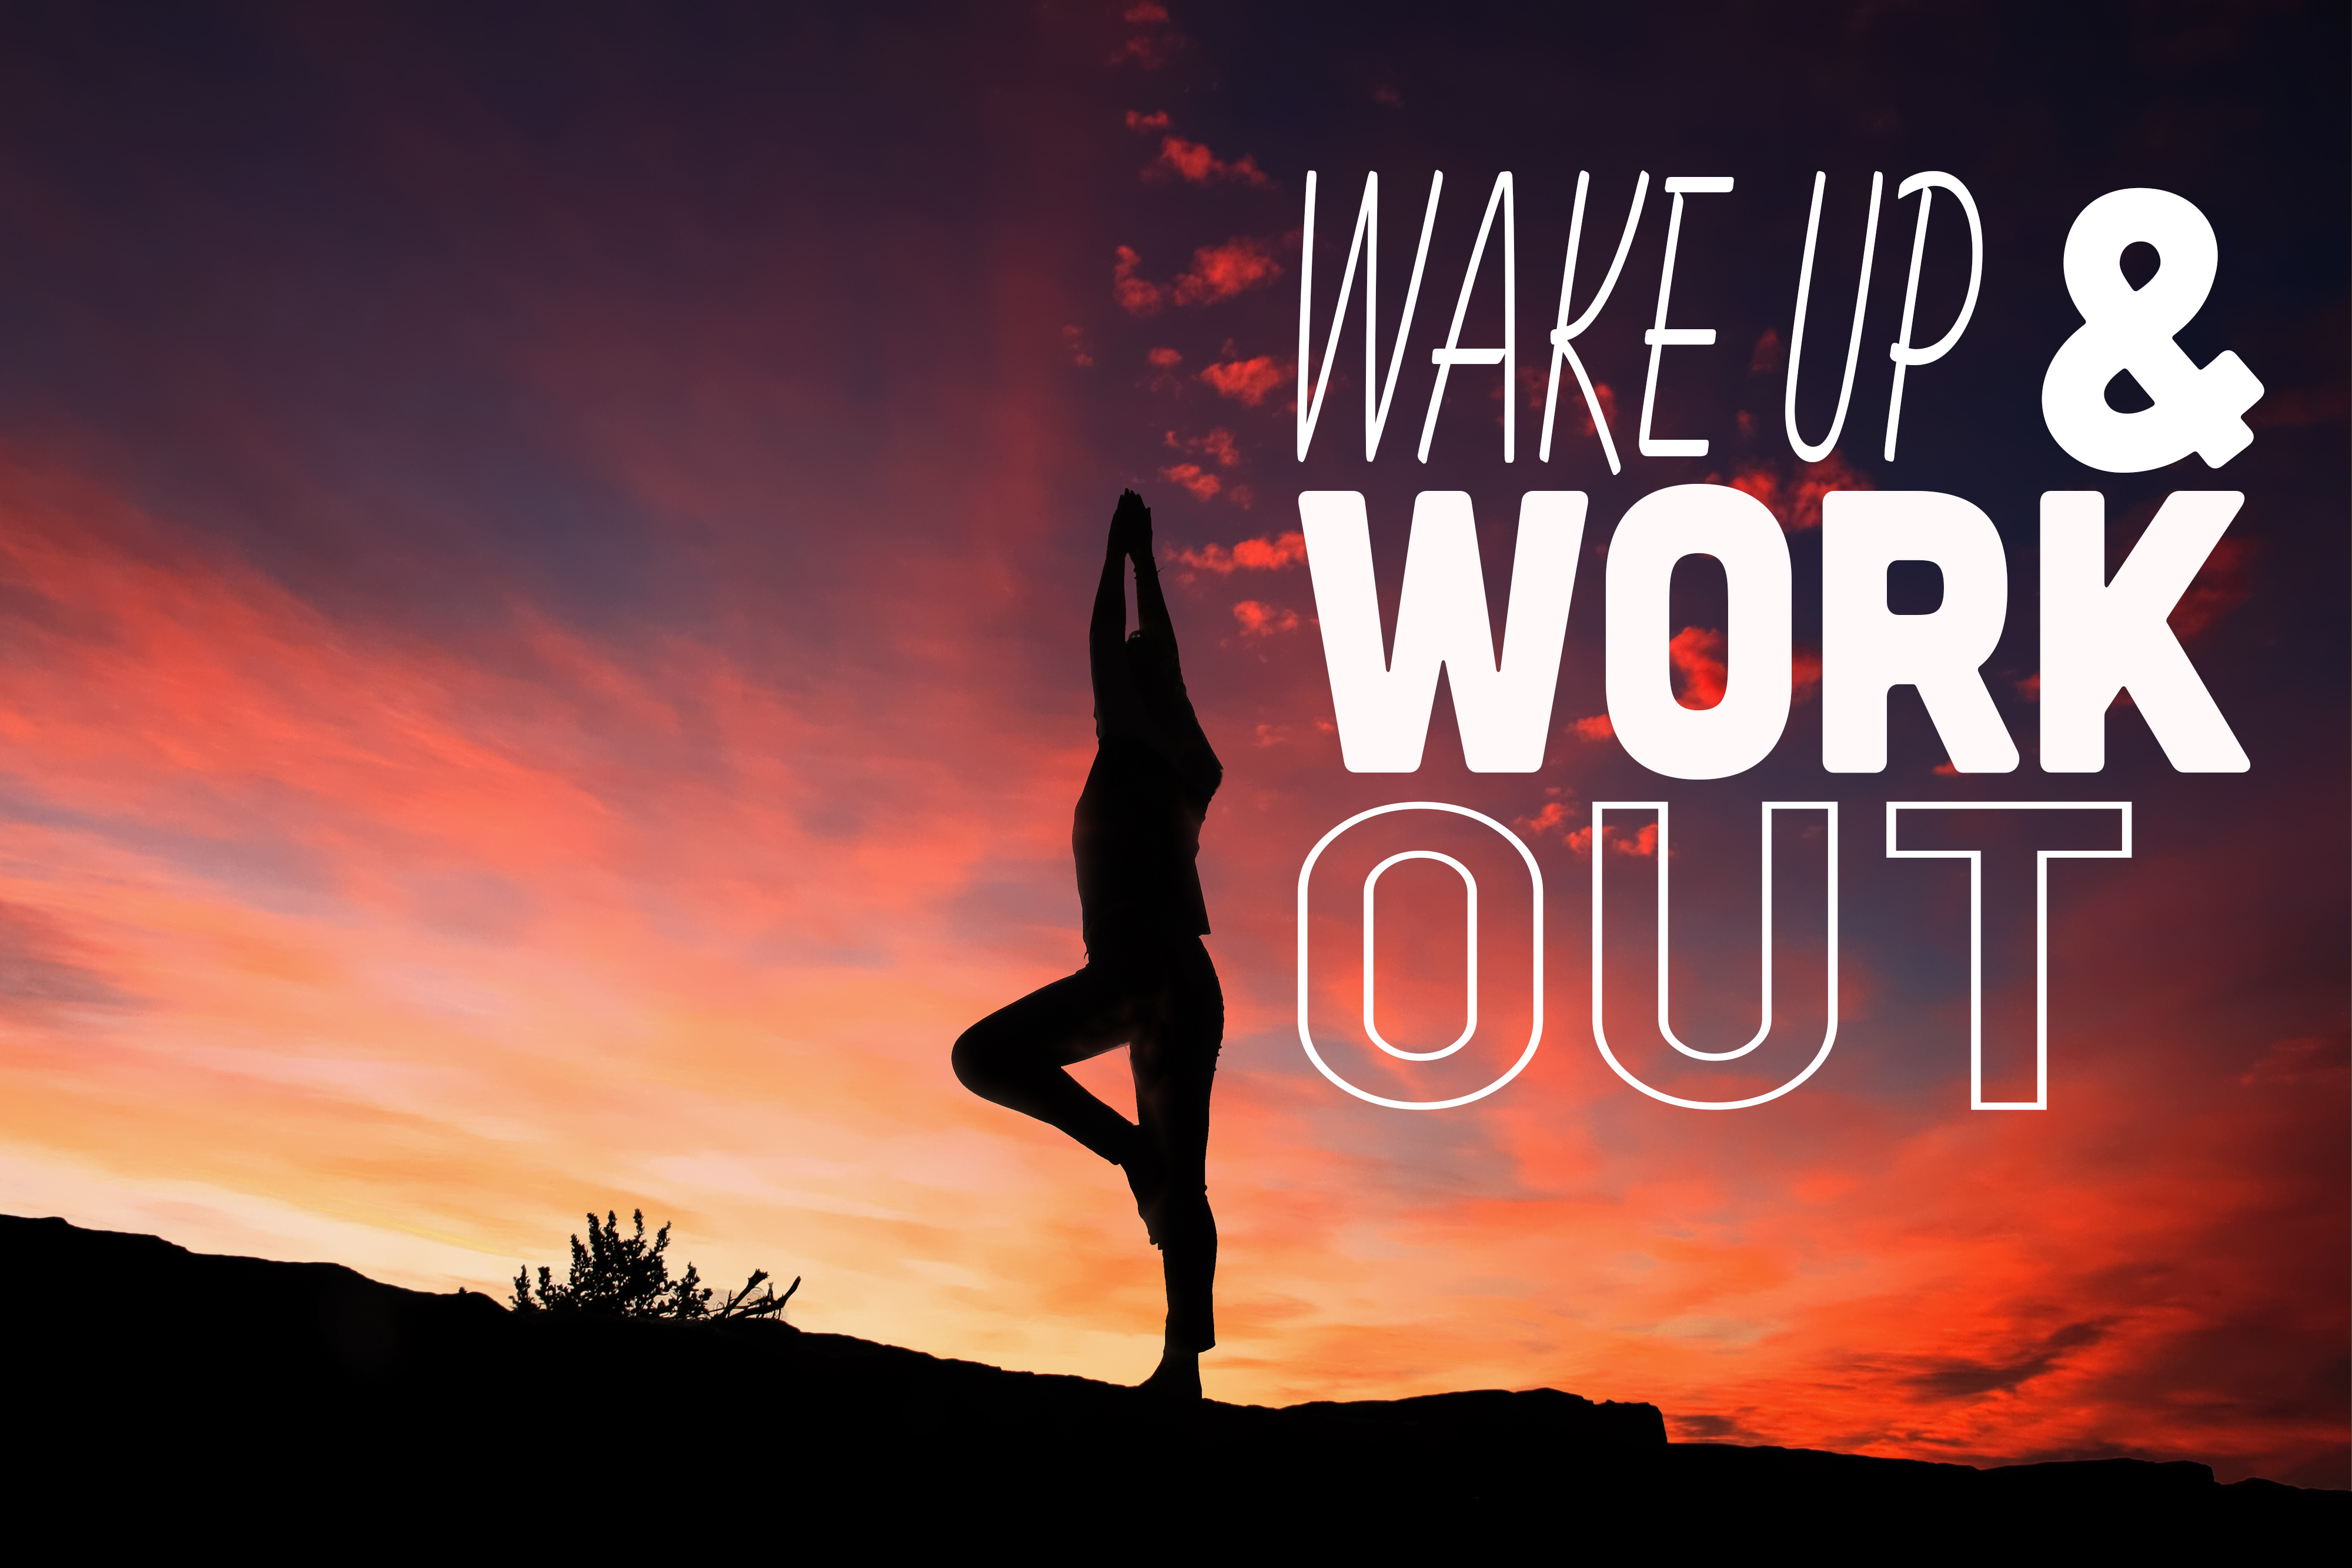 Fitness Wallpaper Designs to Help You Stay Motivated